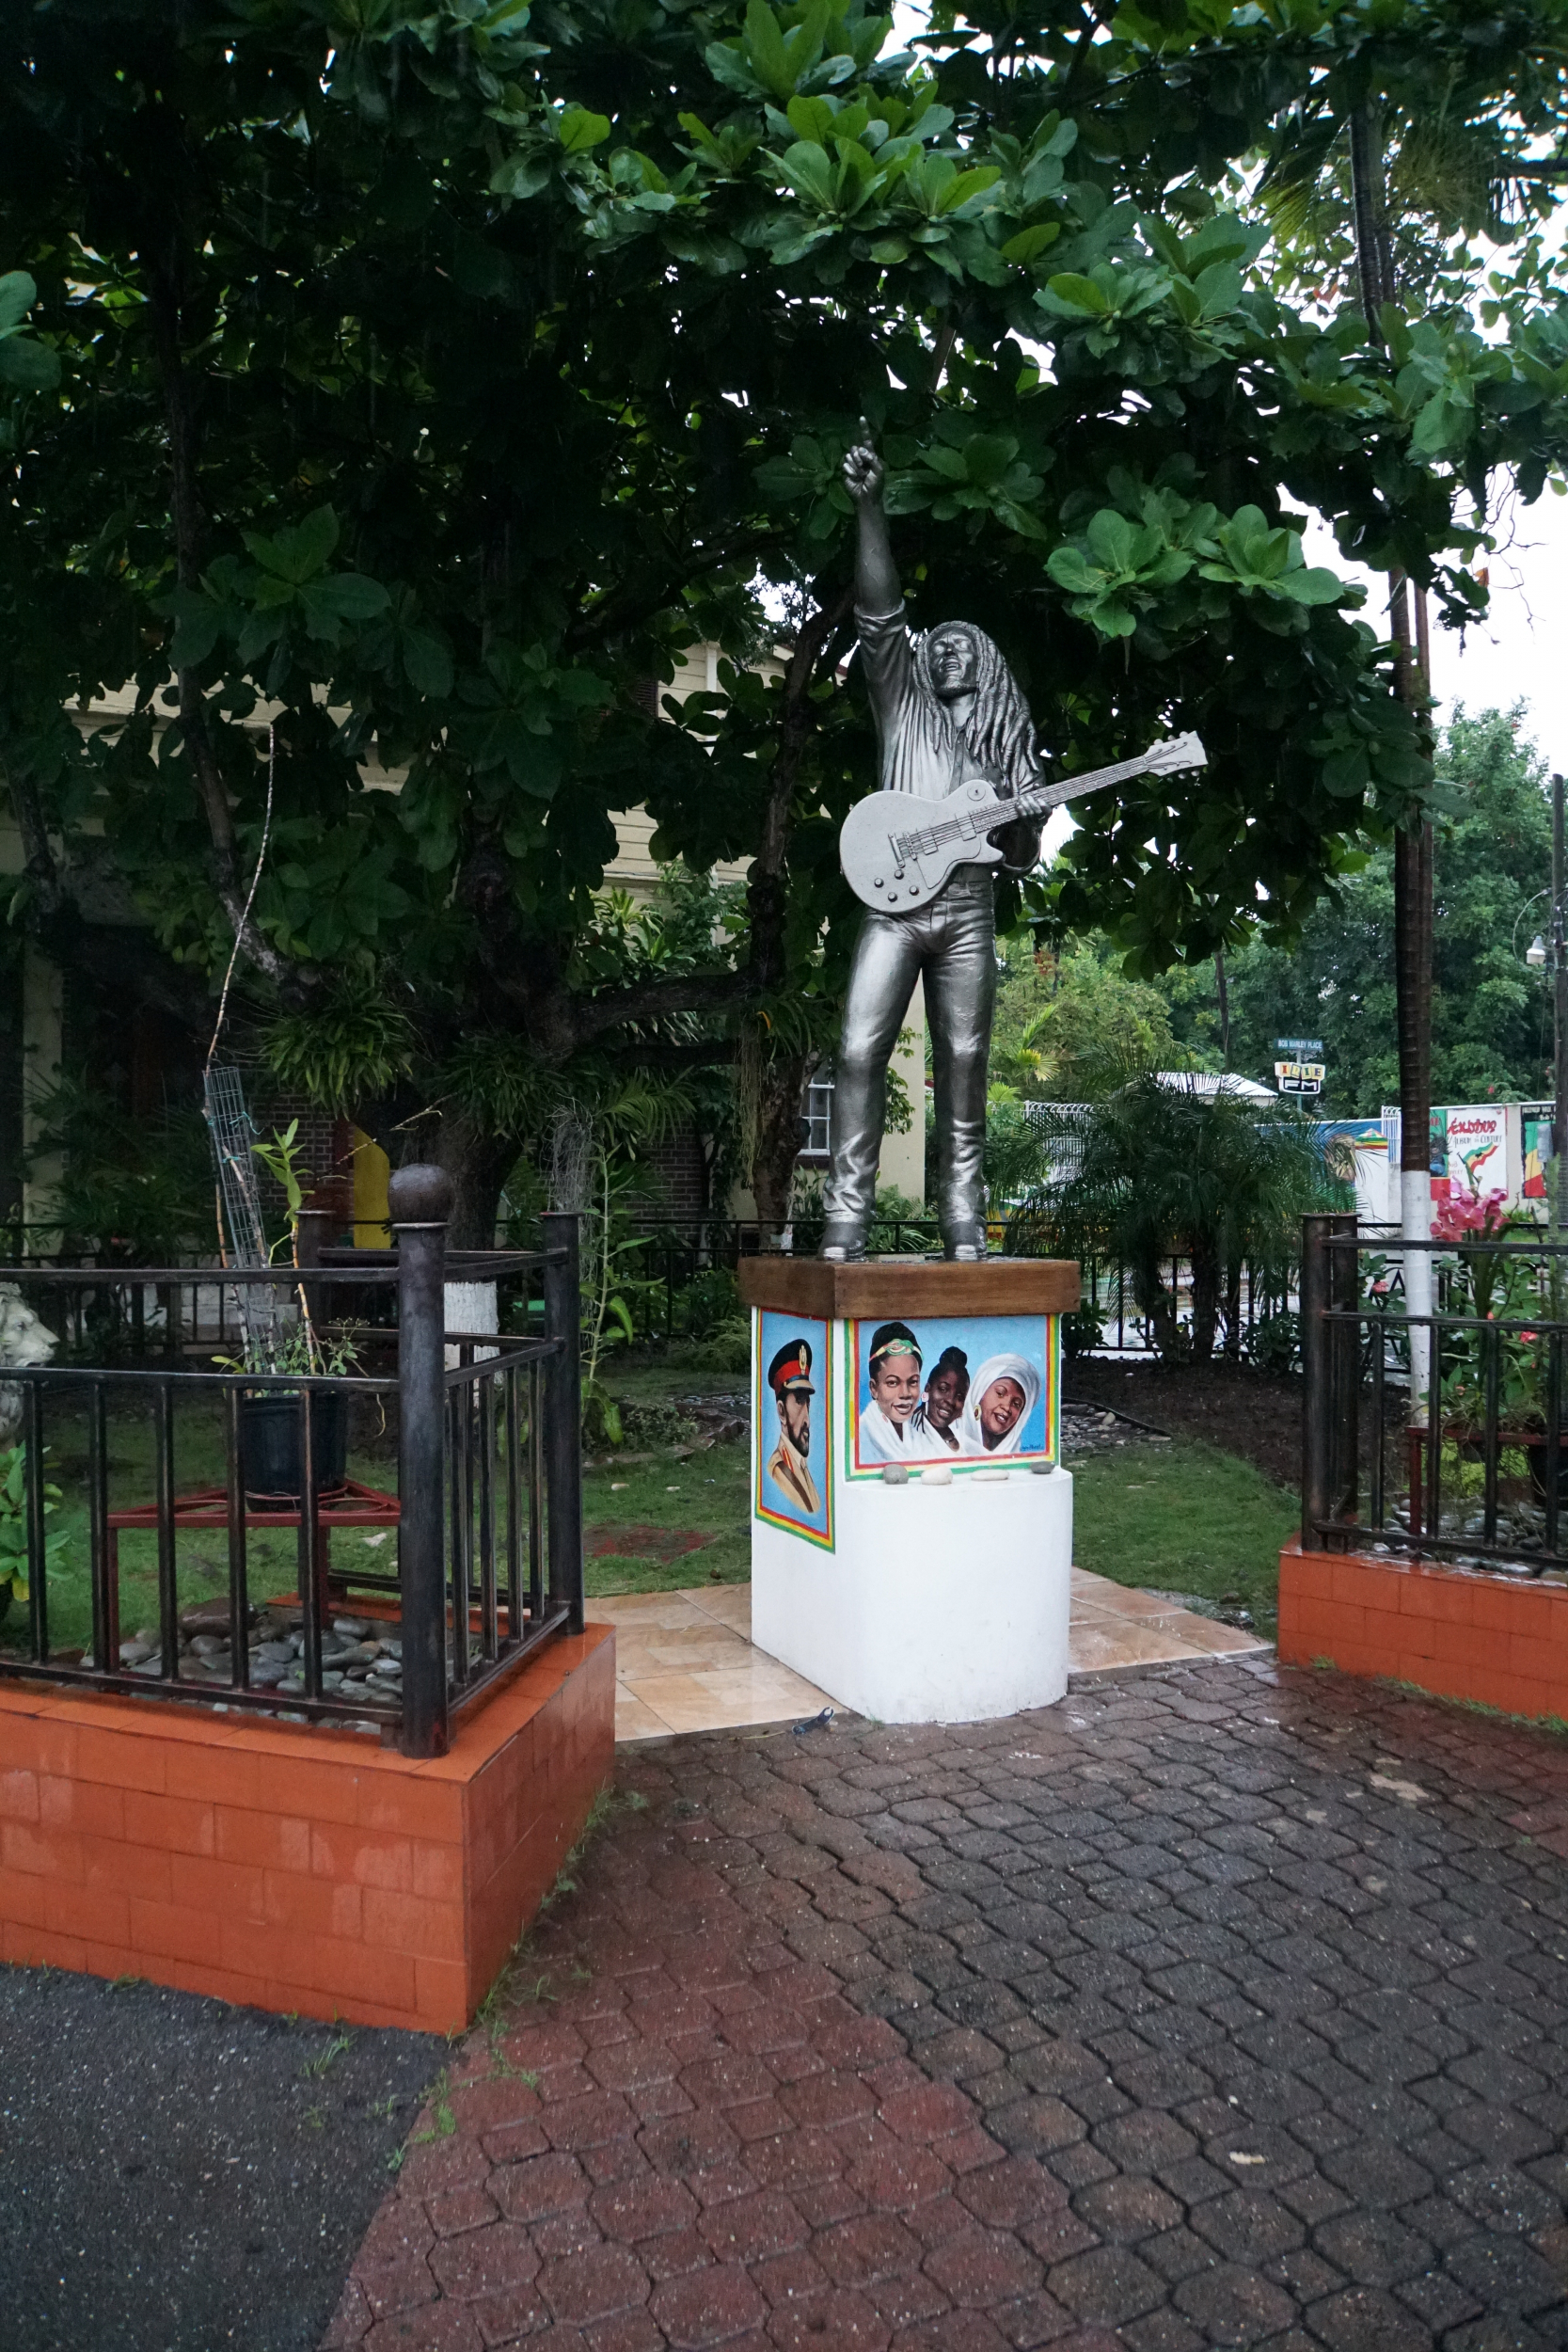 29. Life size statue of Bob Marley